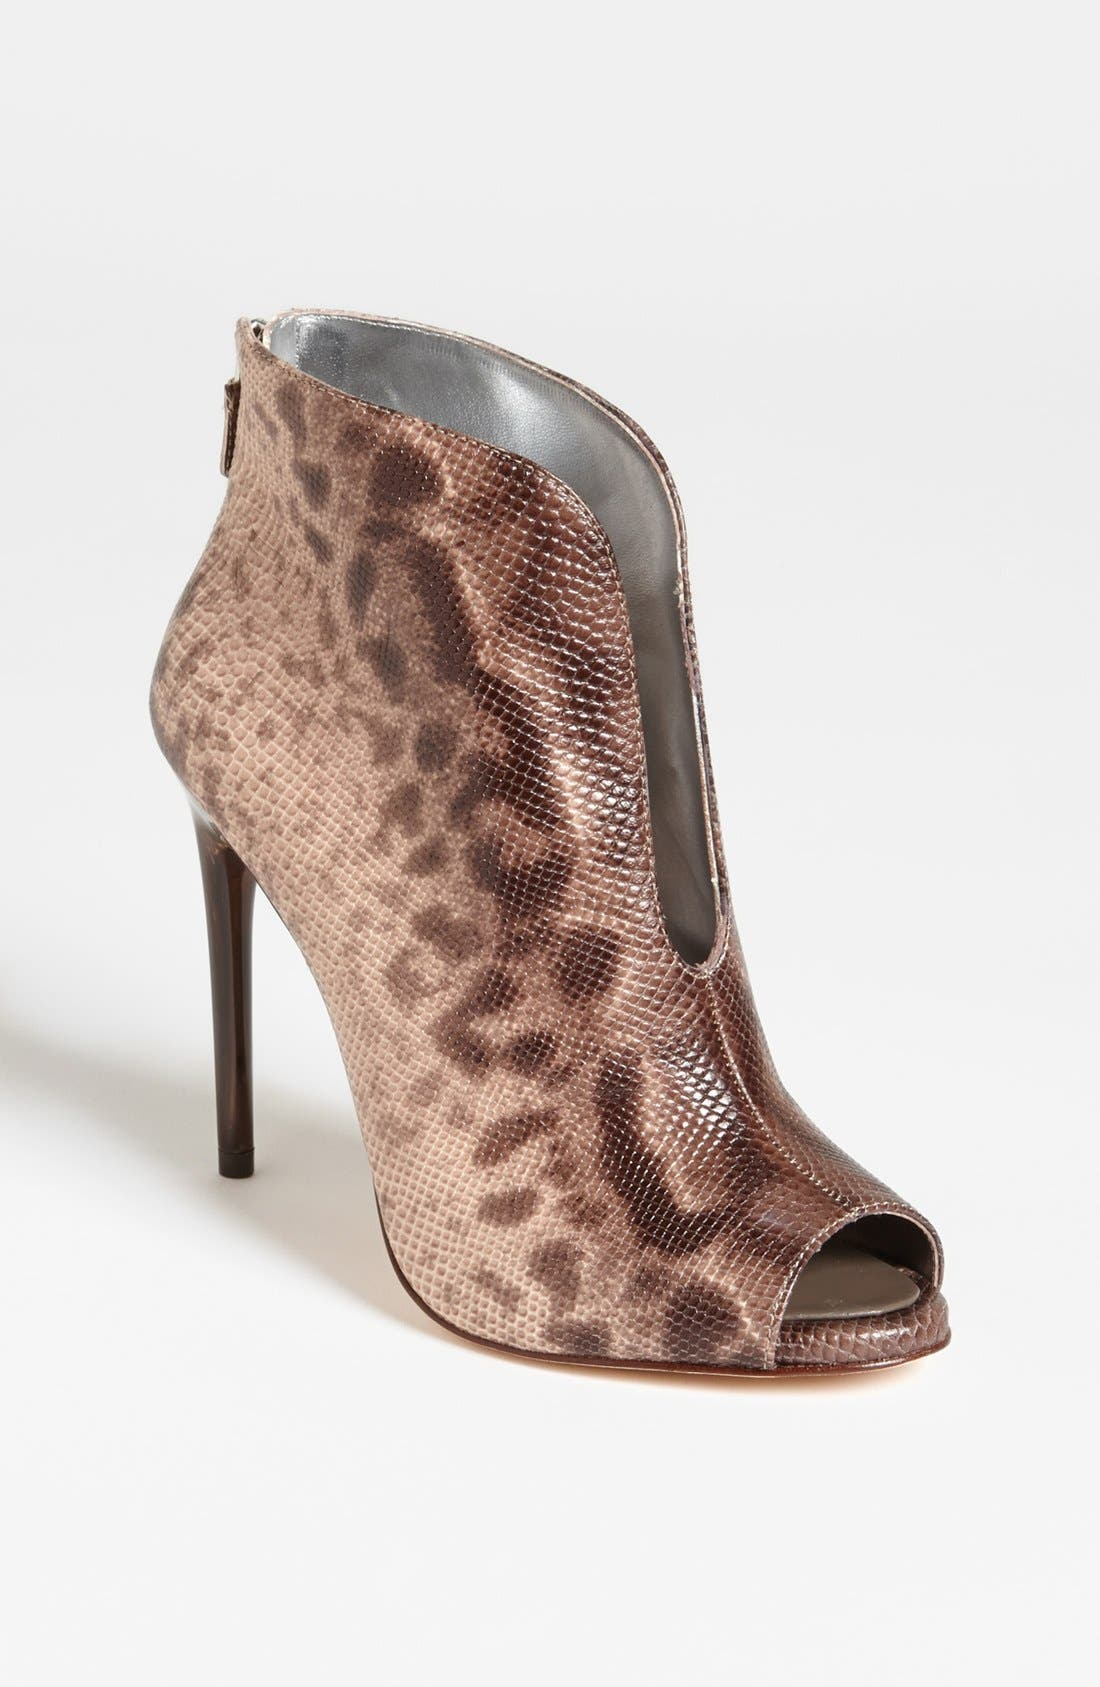 Alternate Image 1 Selected - BCBGMAXAZRIA 'Durres' Bootie